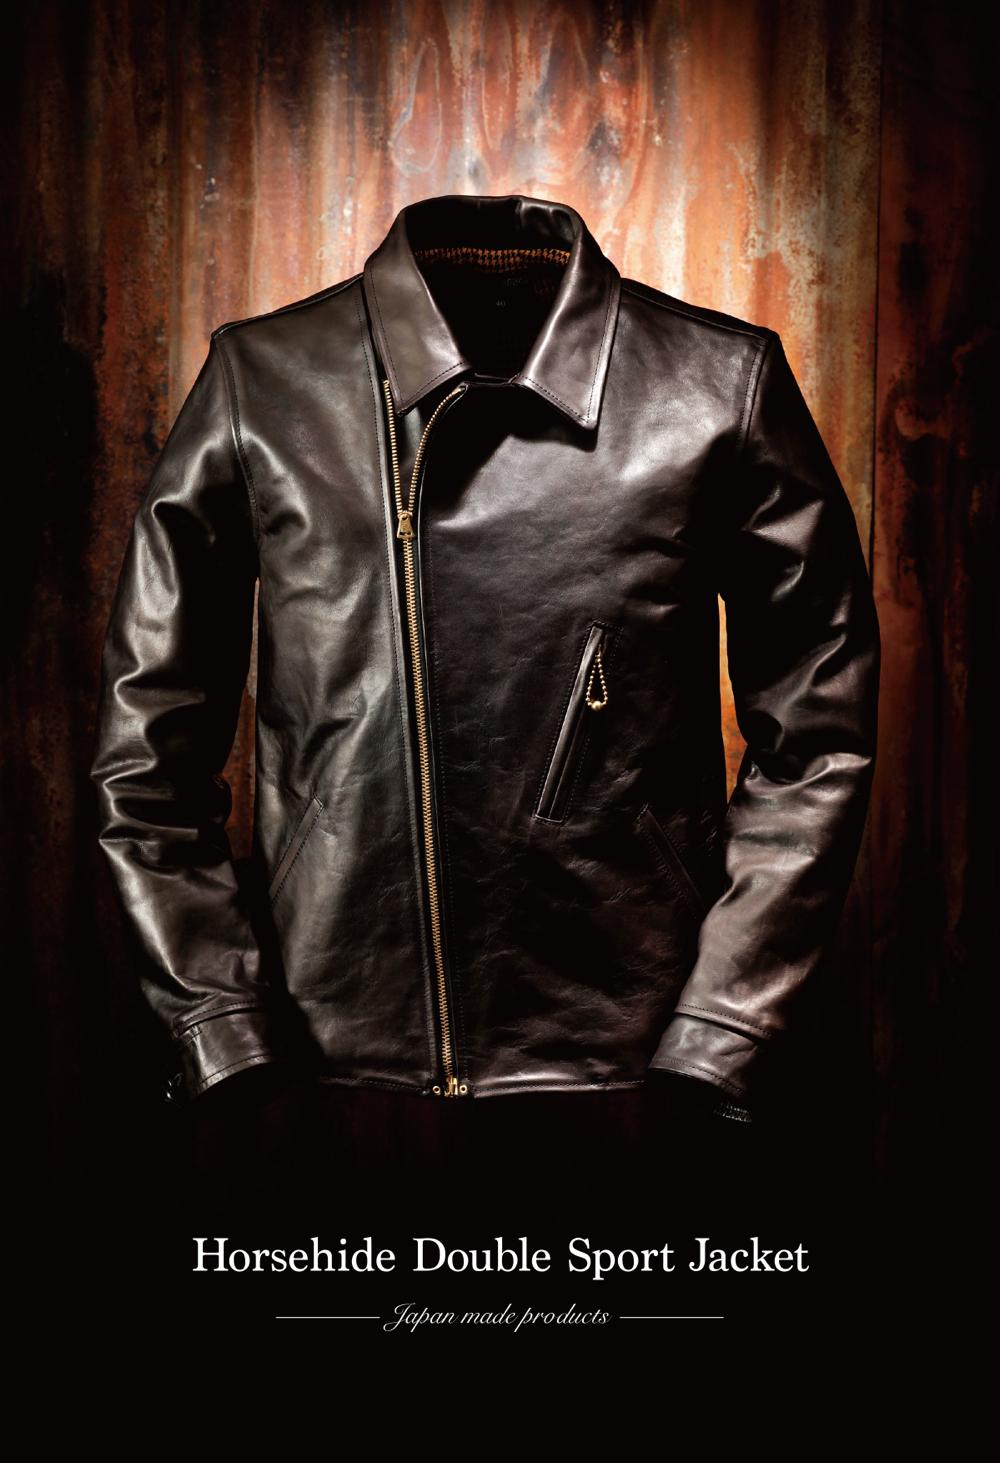 【Attractions】 Horsehide Double Sport Jacket_c0289919_132941.jpg